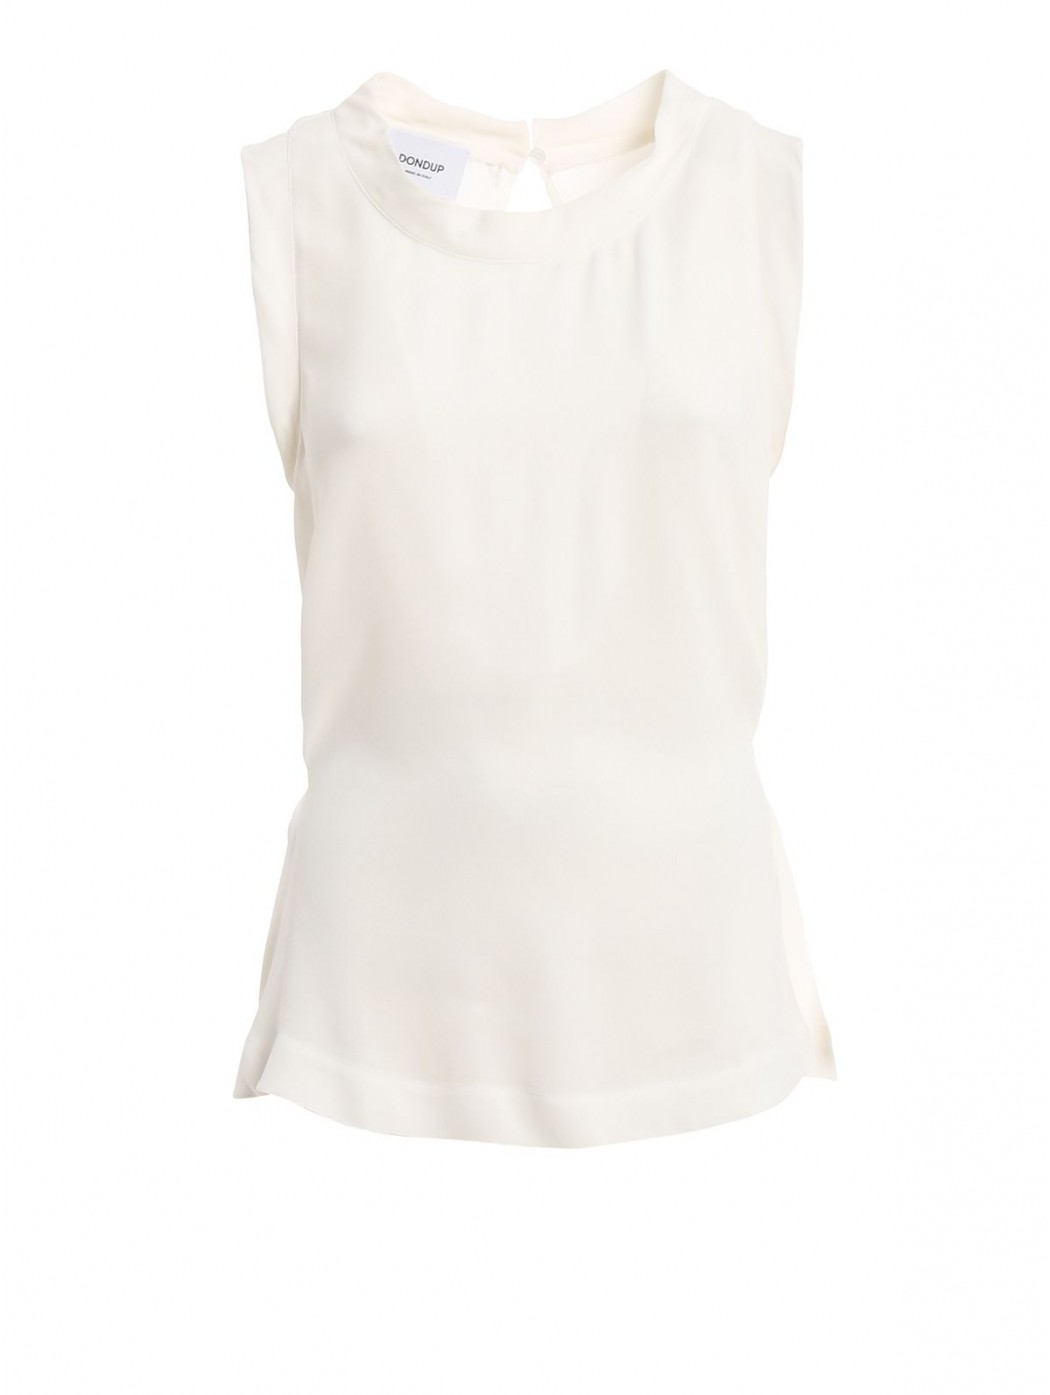 DONDUP DC065 002 CAMICIE